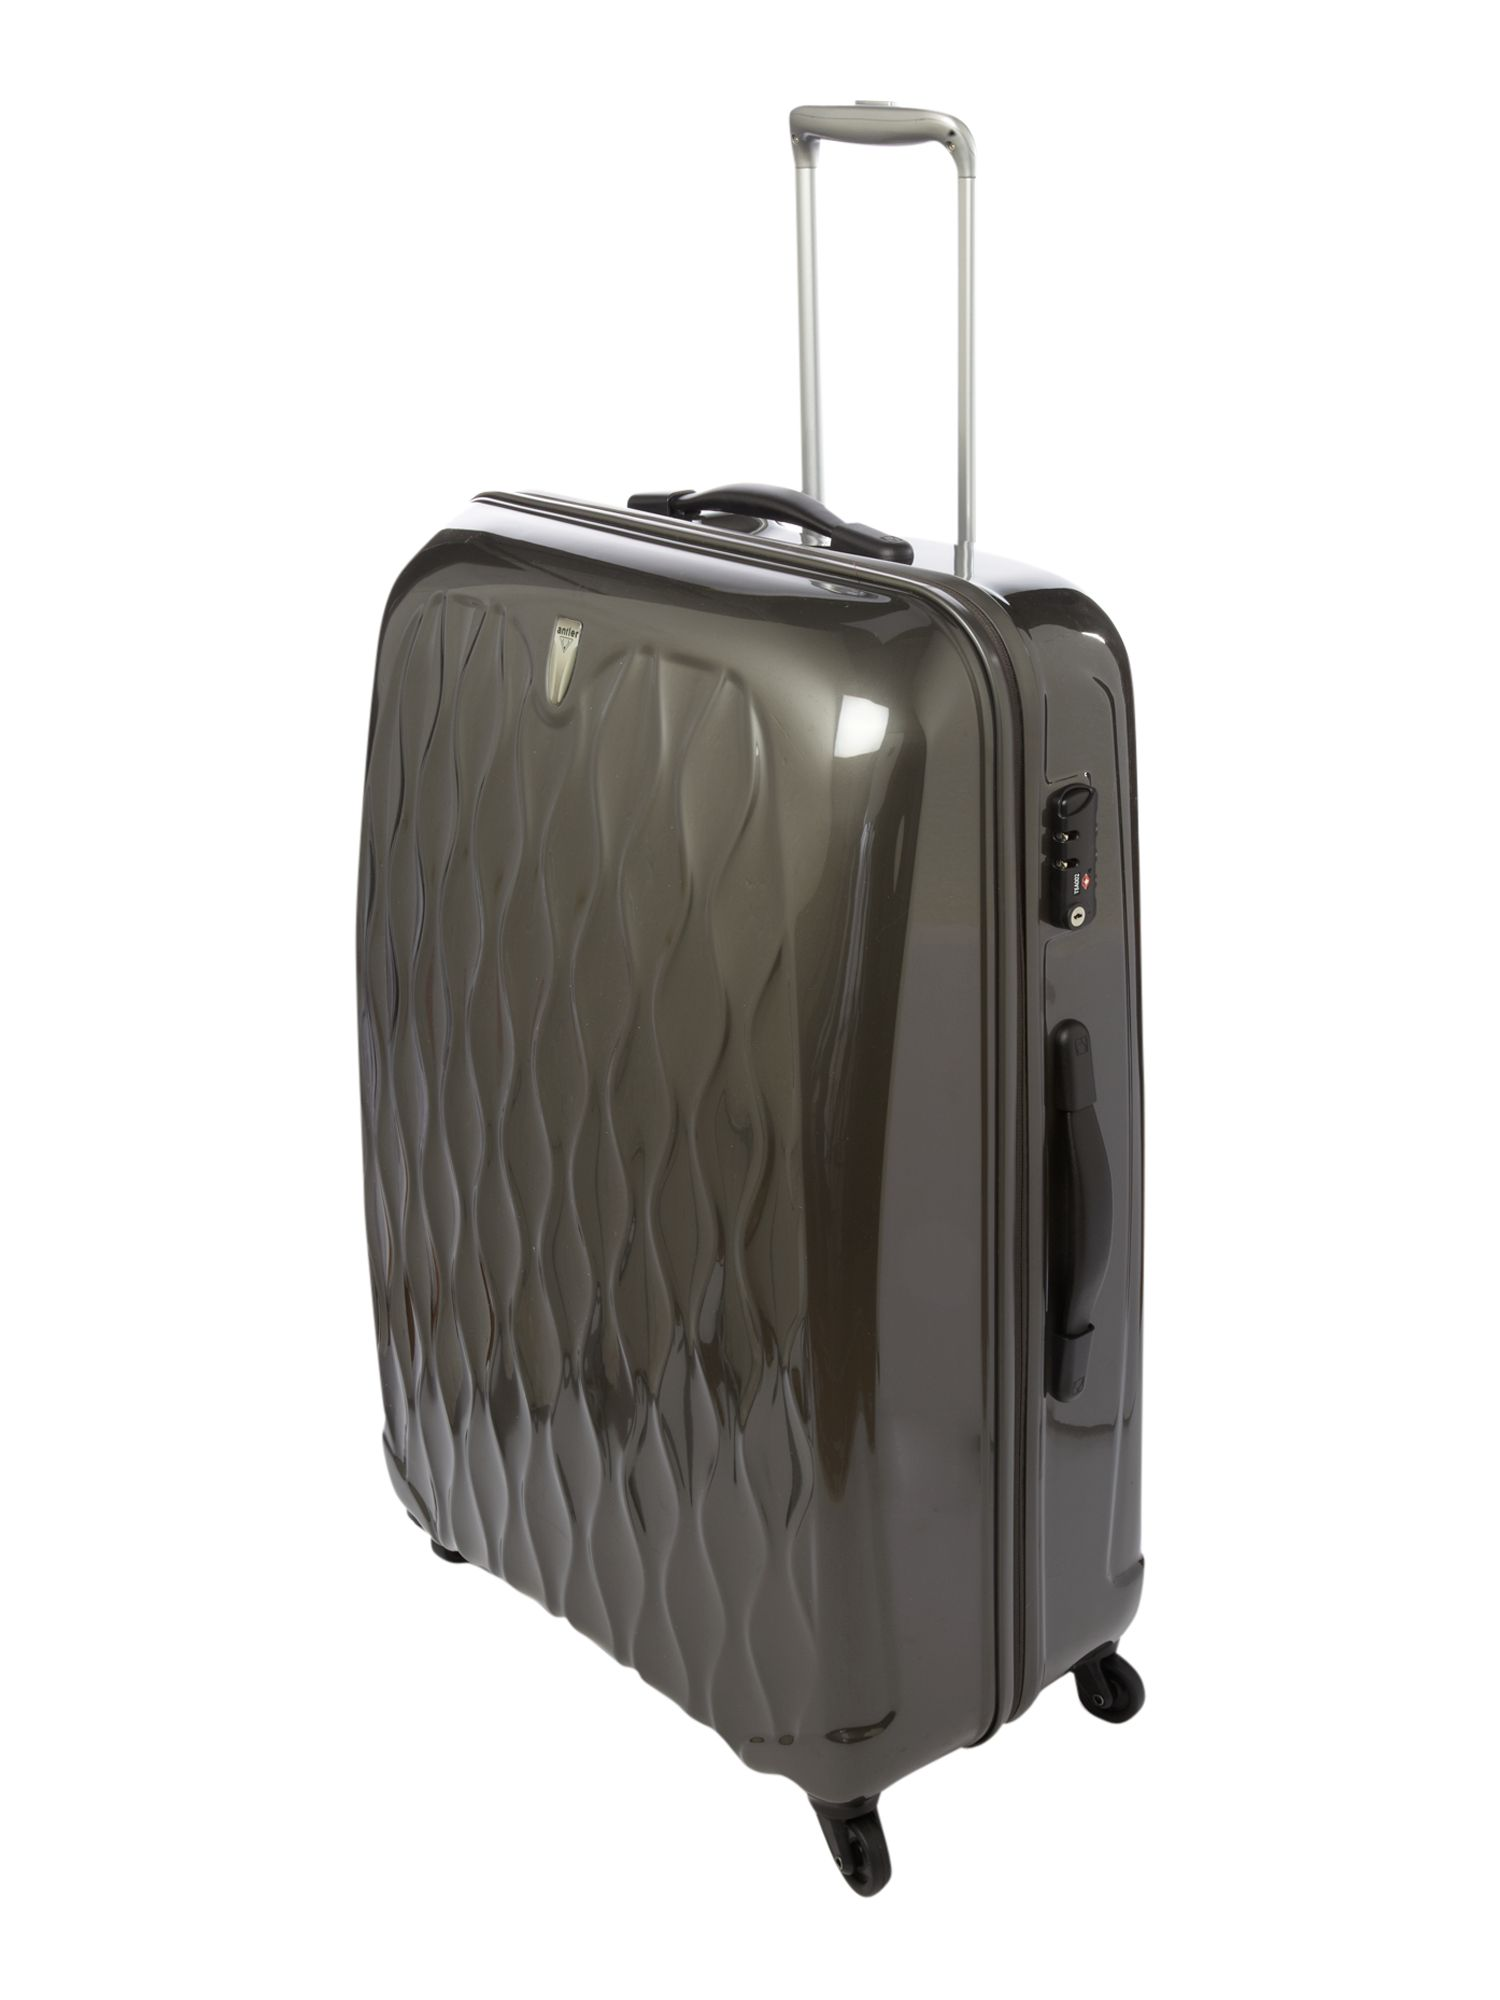 Liquis Graphite Large 4 Wheel Case